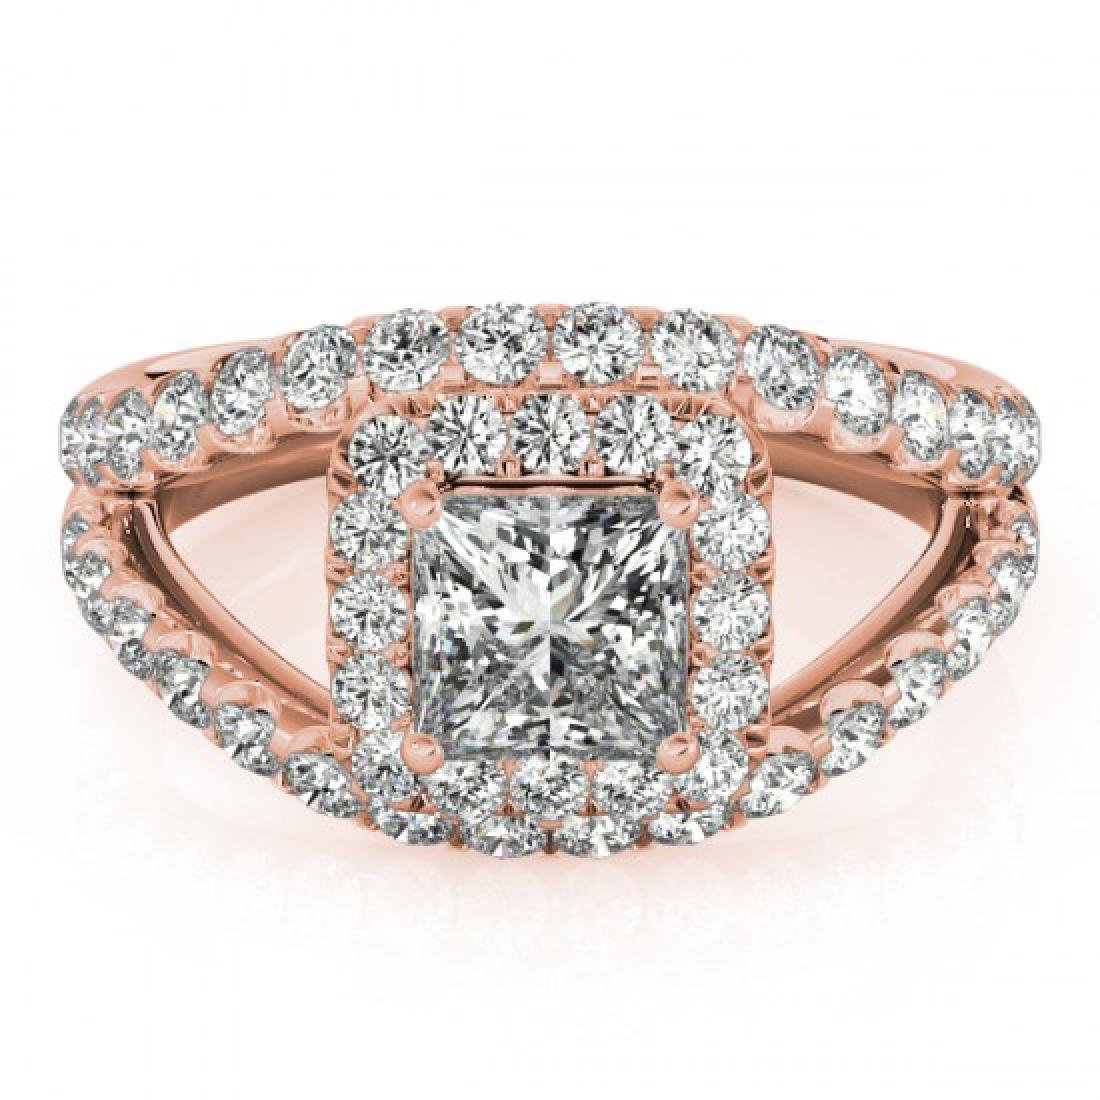 1.85 CTW Certified VS/SI Princess Diamond Solitaire